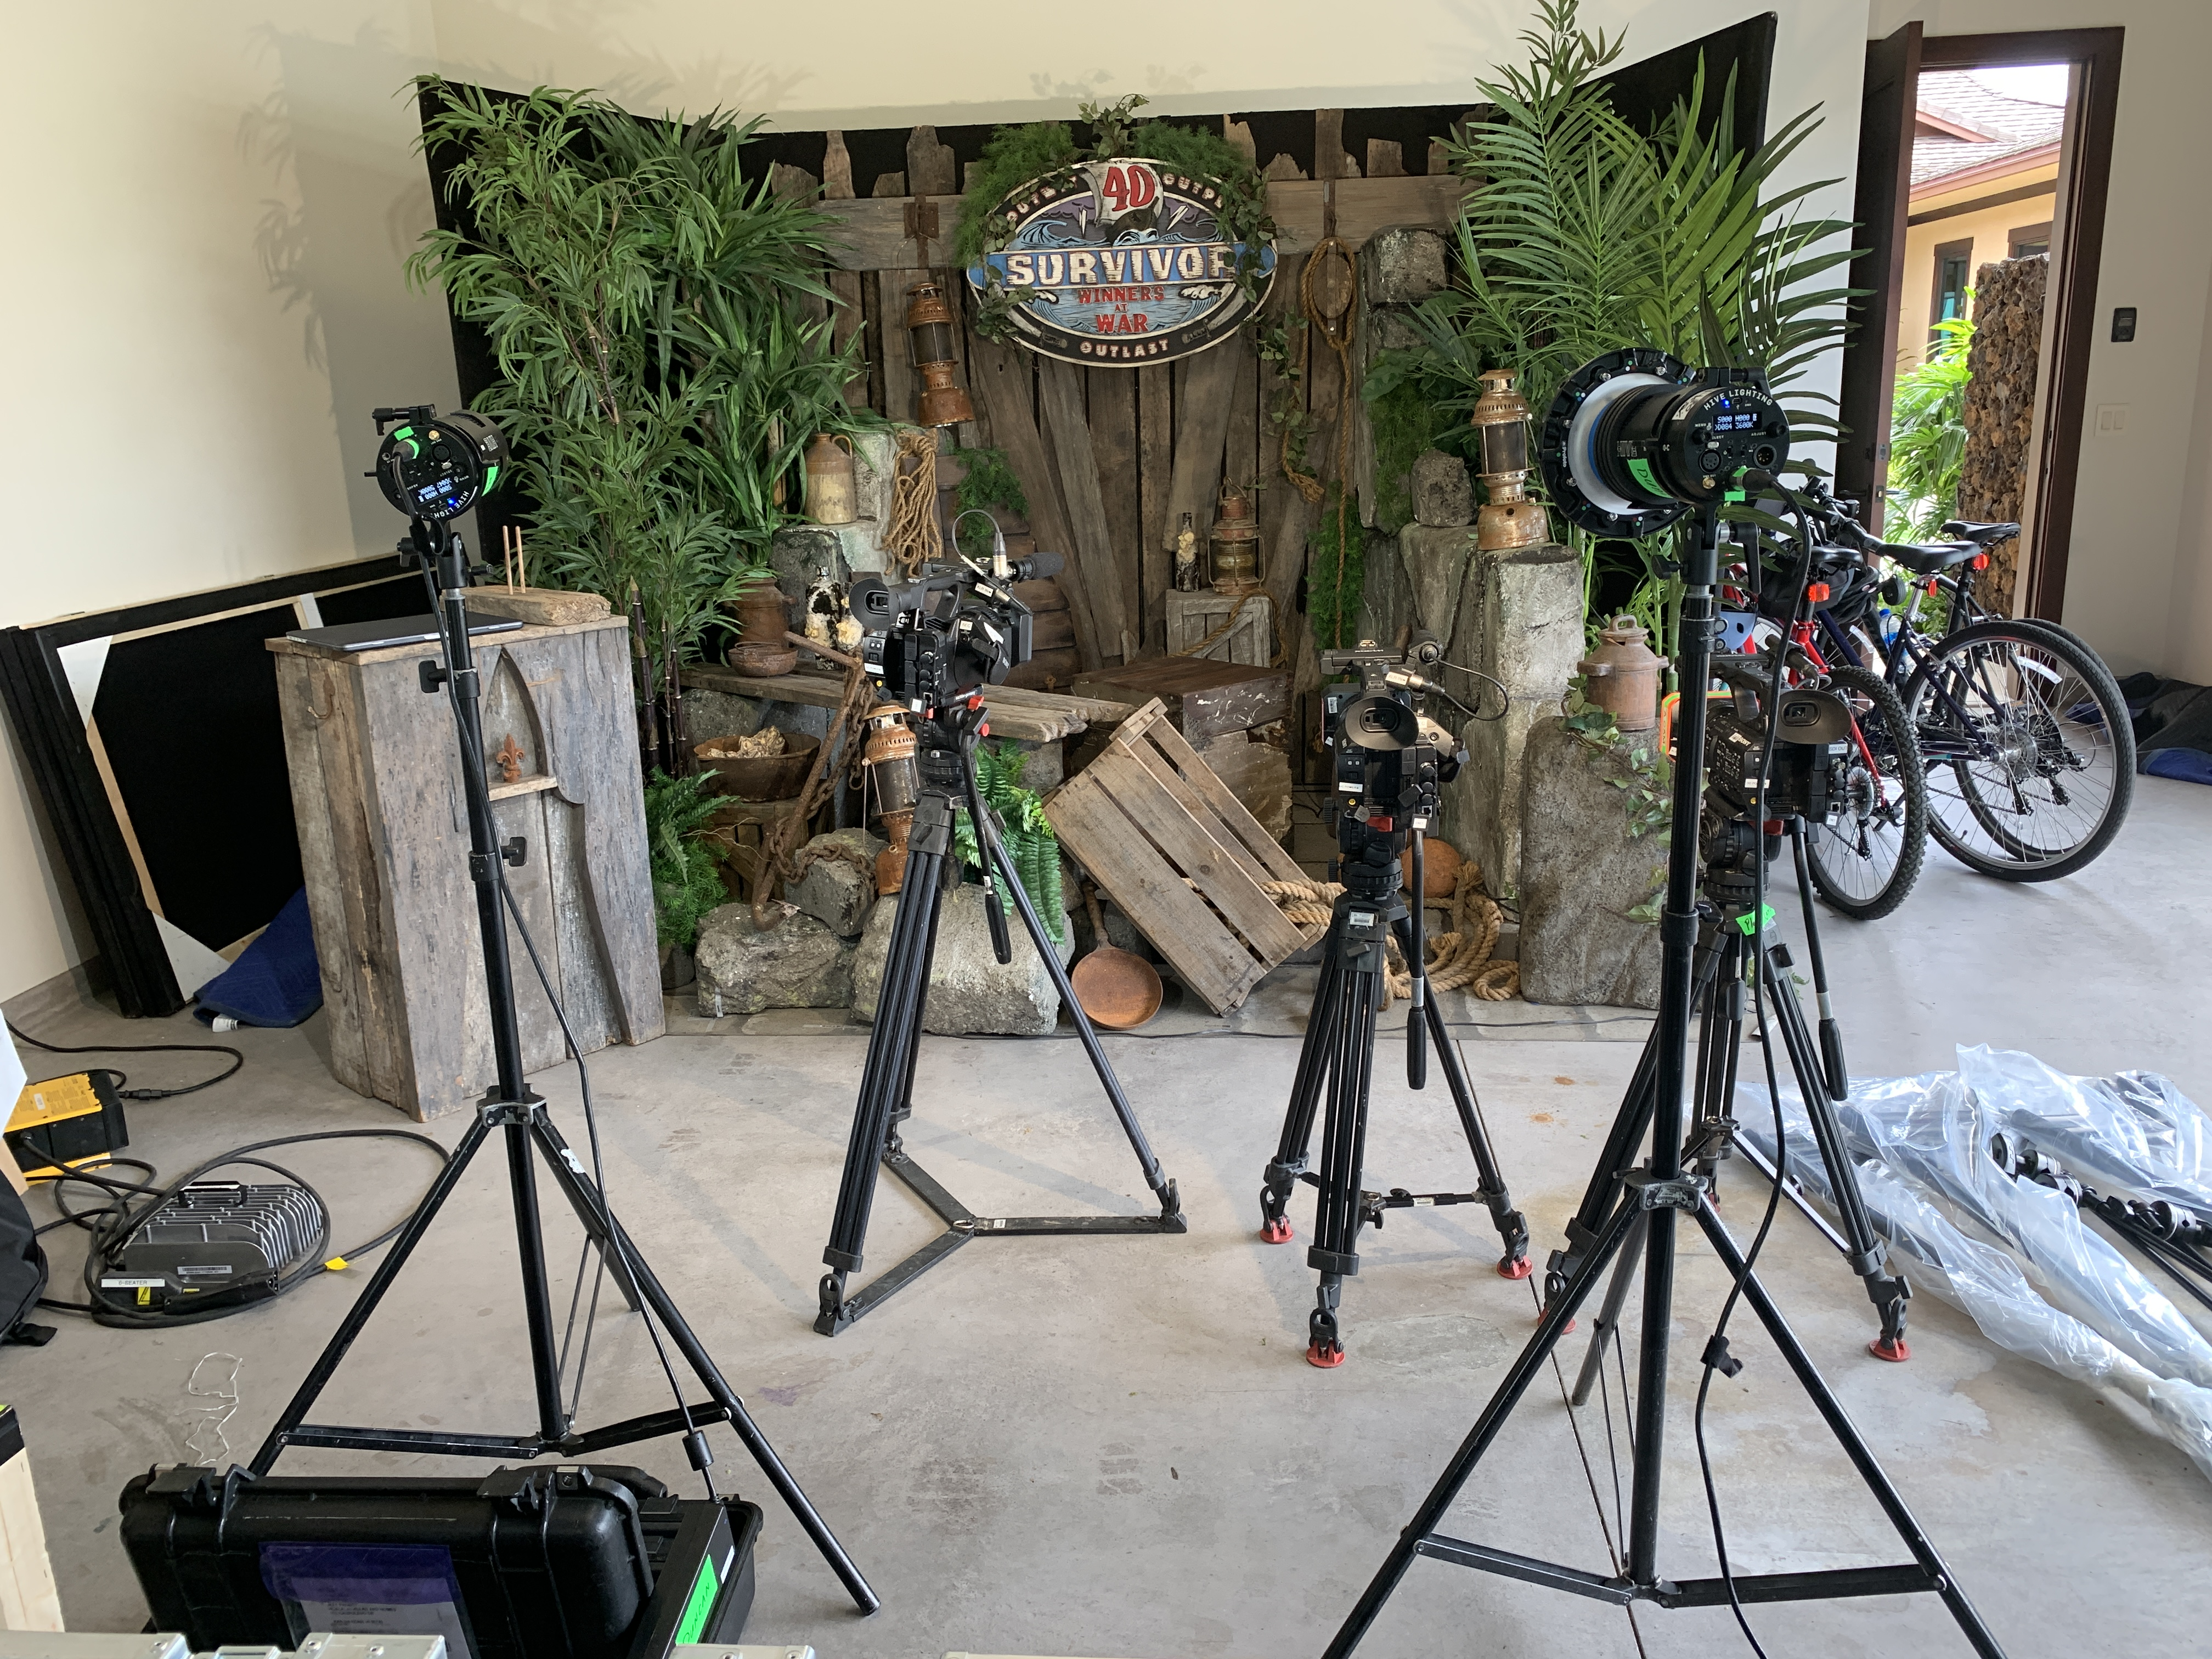 & nbsp; As soon as the Sony PXW-Z280 cameras were locked on their tripods, the producers of the show controlled zoom, focus and iris via the Internet via the XDCAM flight service. & nbsp;